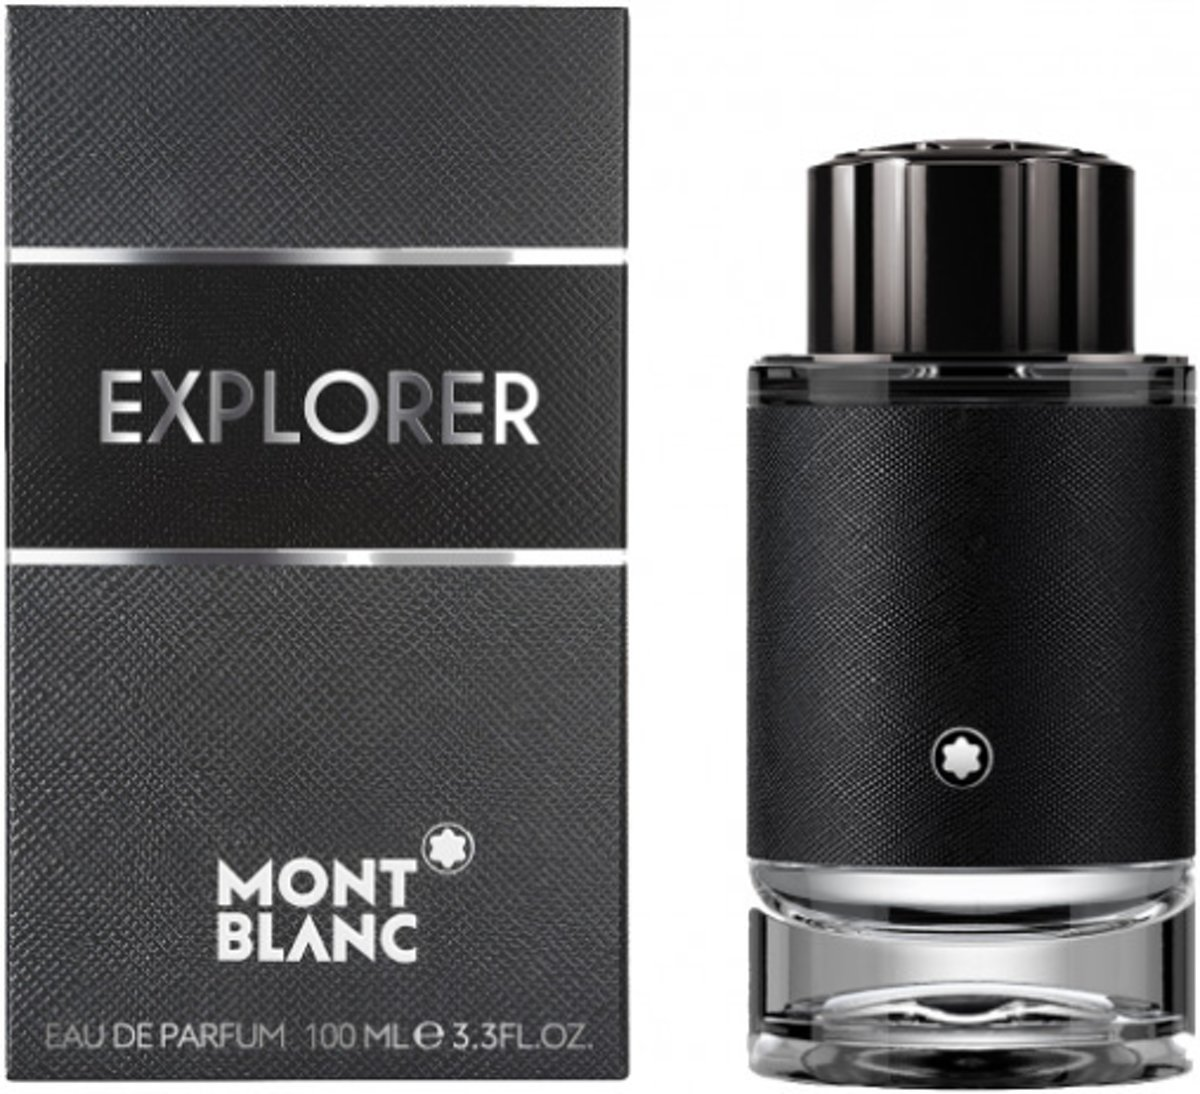 Montblanc Explorer 100ml EDP Spray